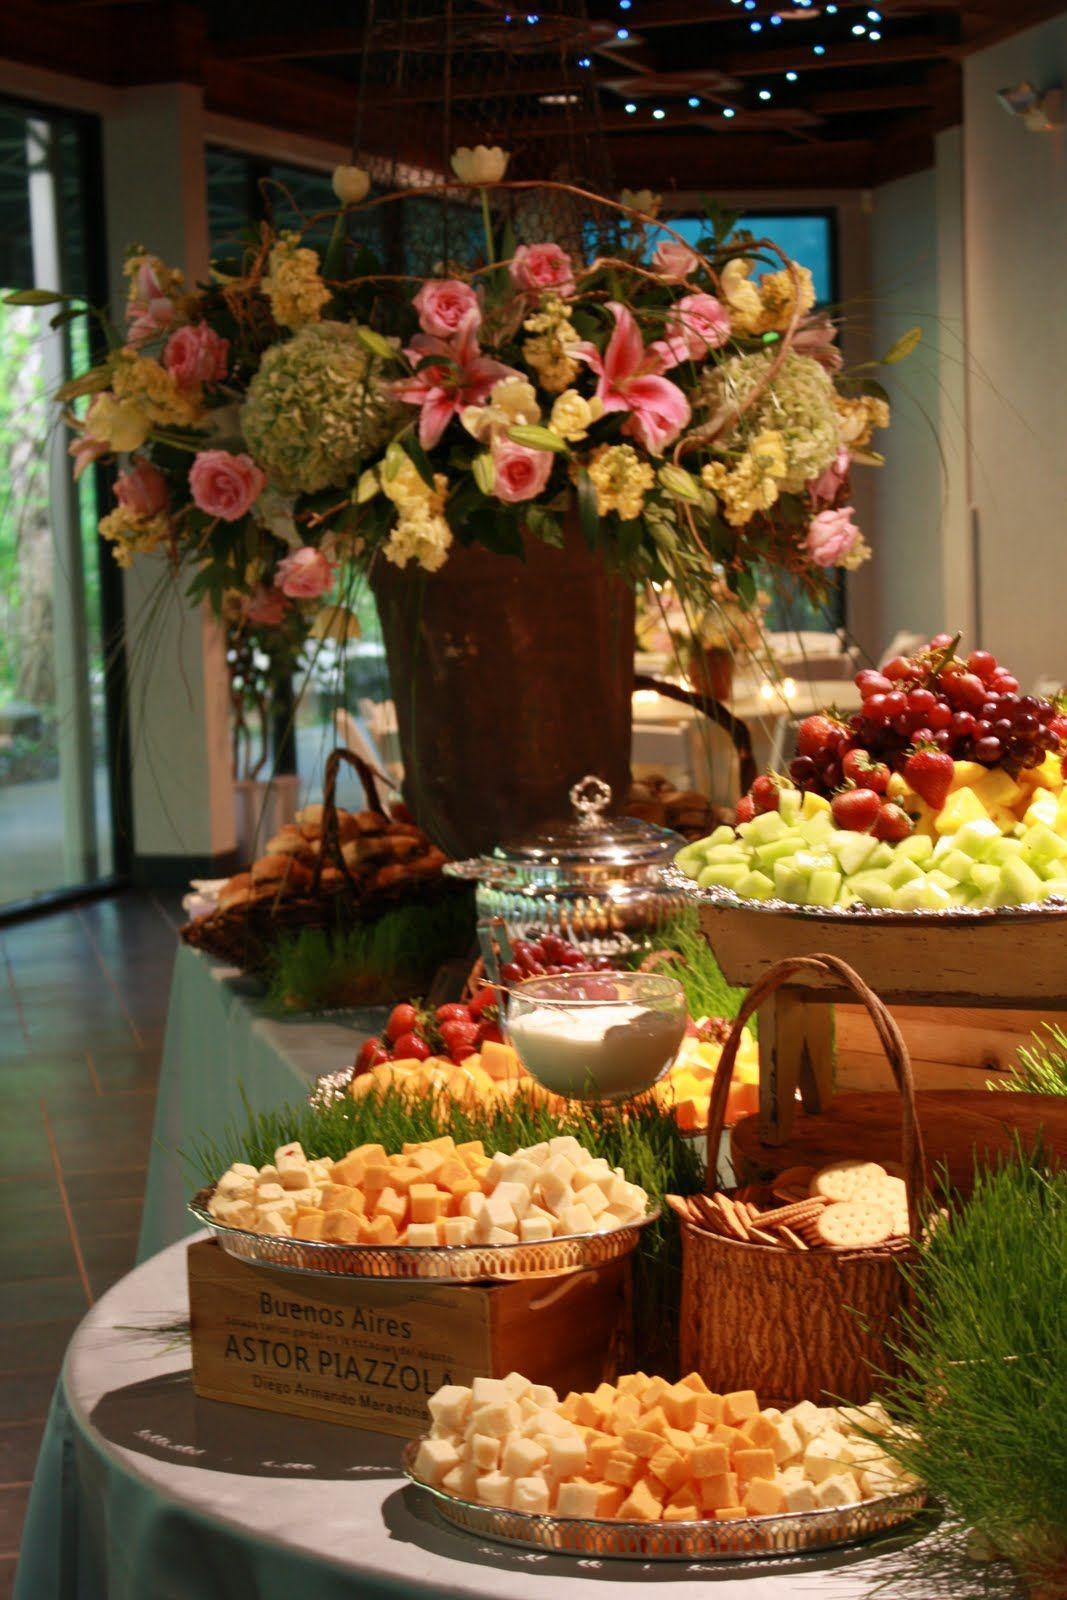 Simply The Best Catering May 2010 Appetizers Table Wedding Food Display Buffet Food